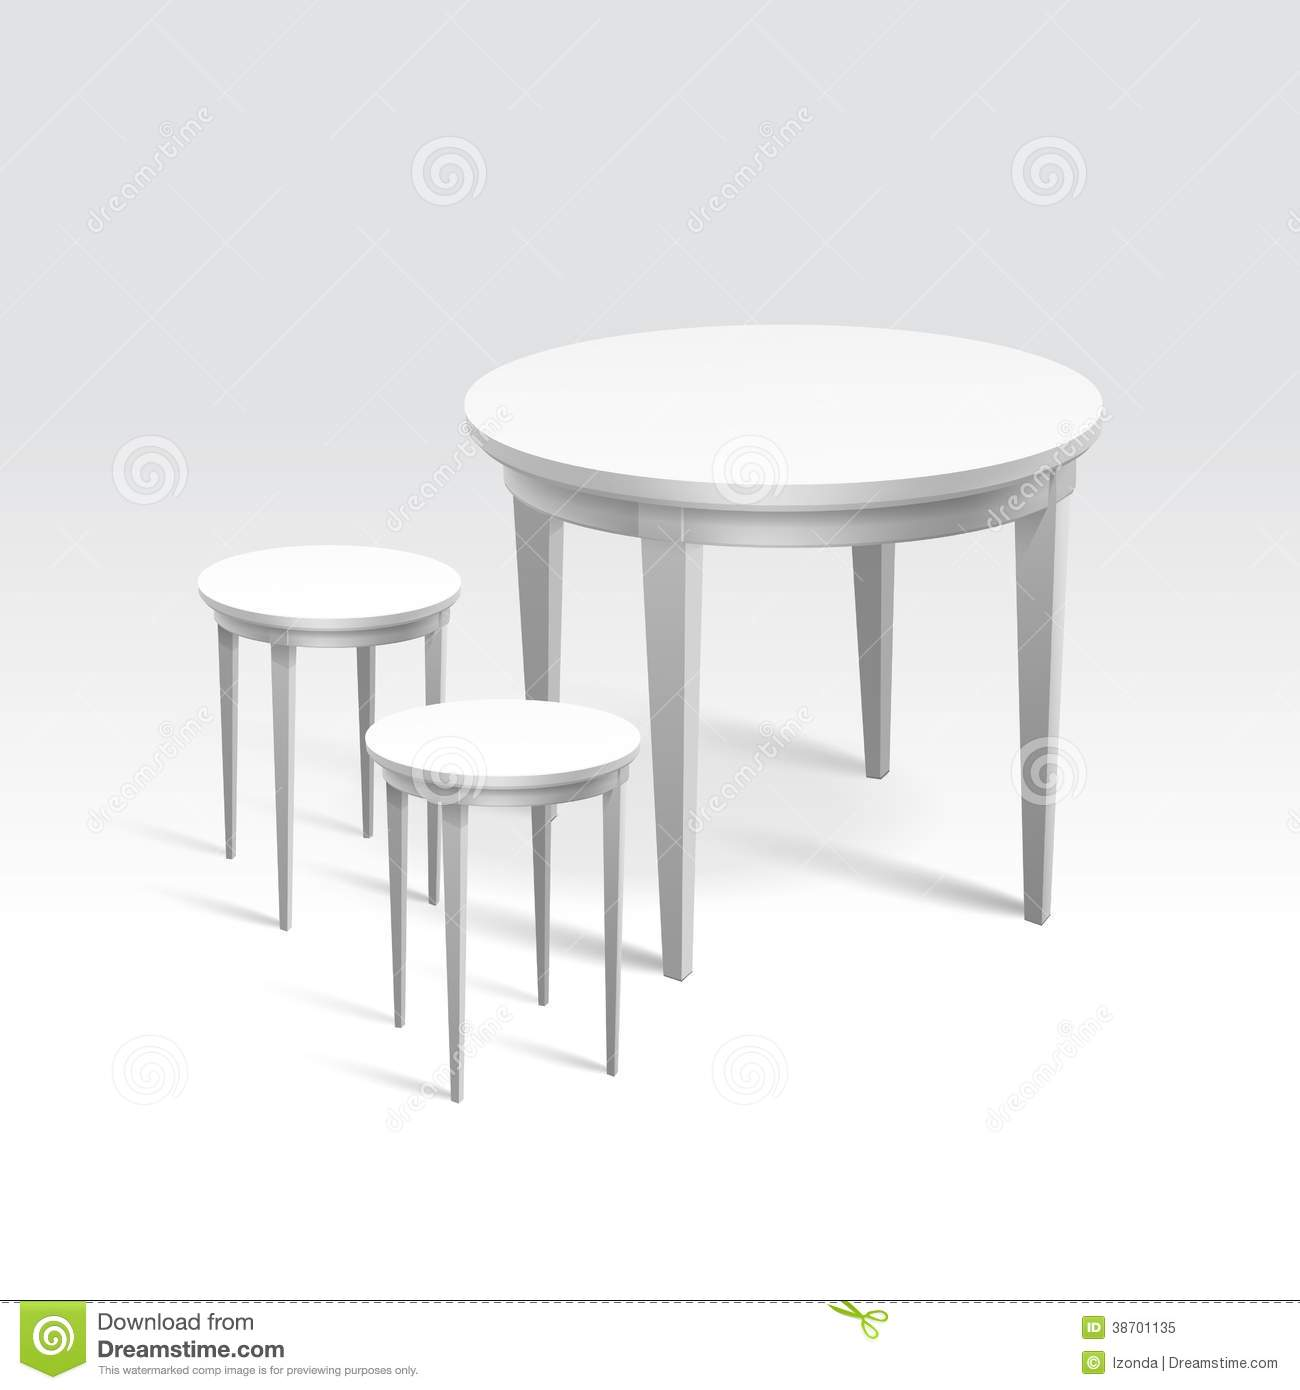 Vector Empty Round Table With Two Chairs Stock Illustration ...